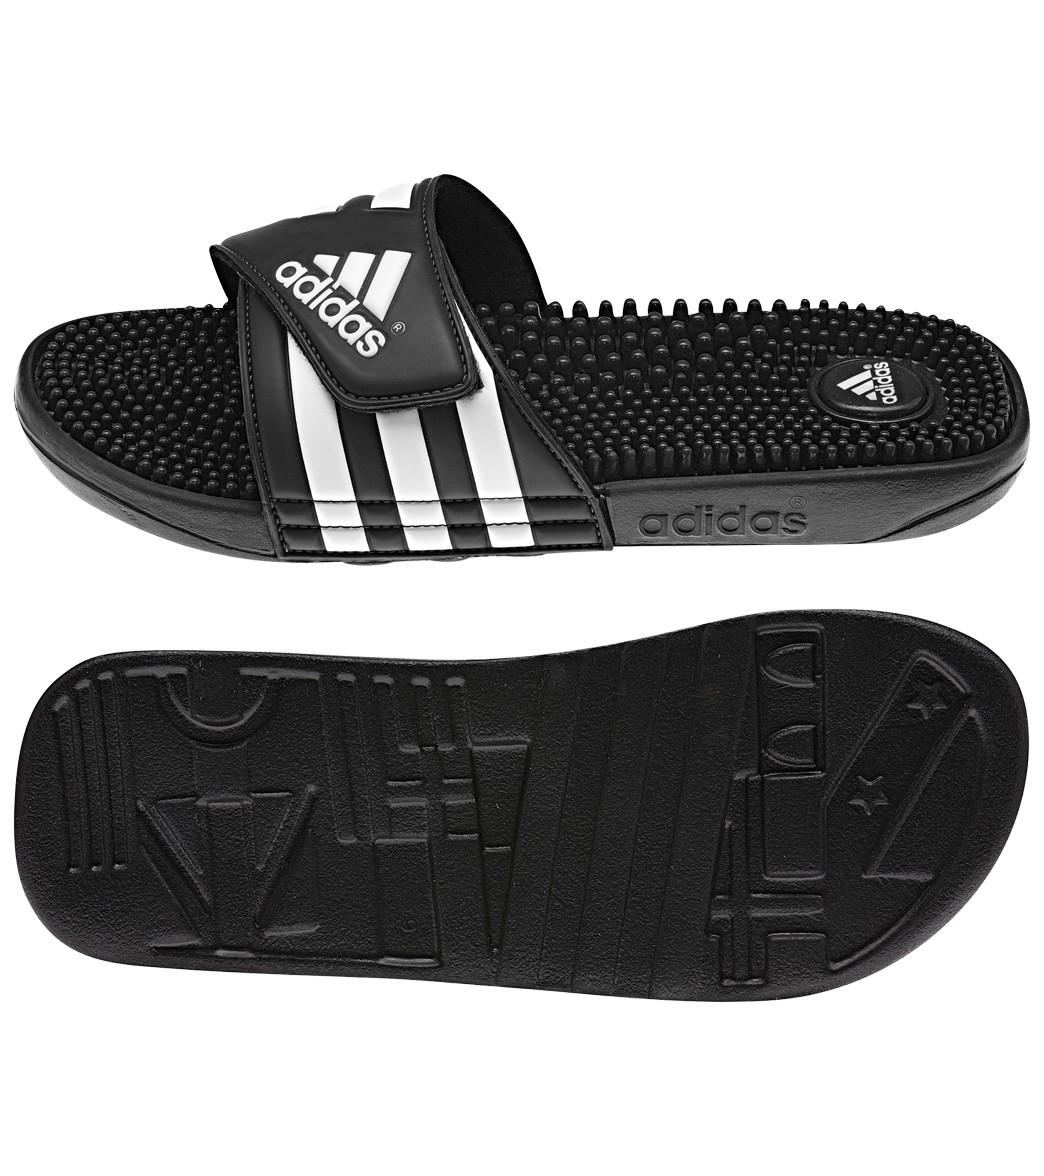 49072e82f4 Adidas Adissage Slide Sandals at SwimOutlet.com